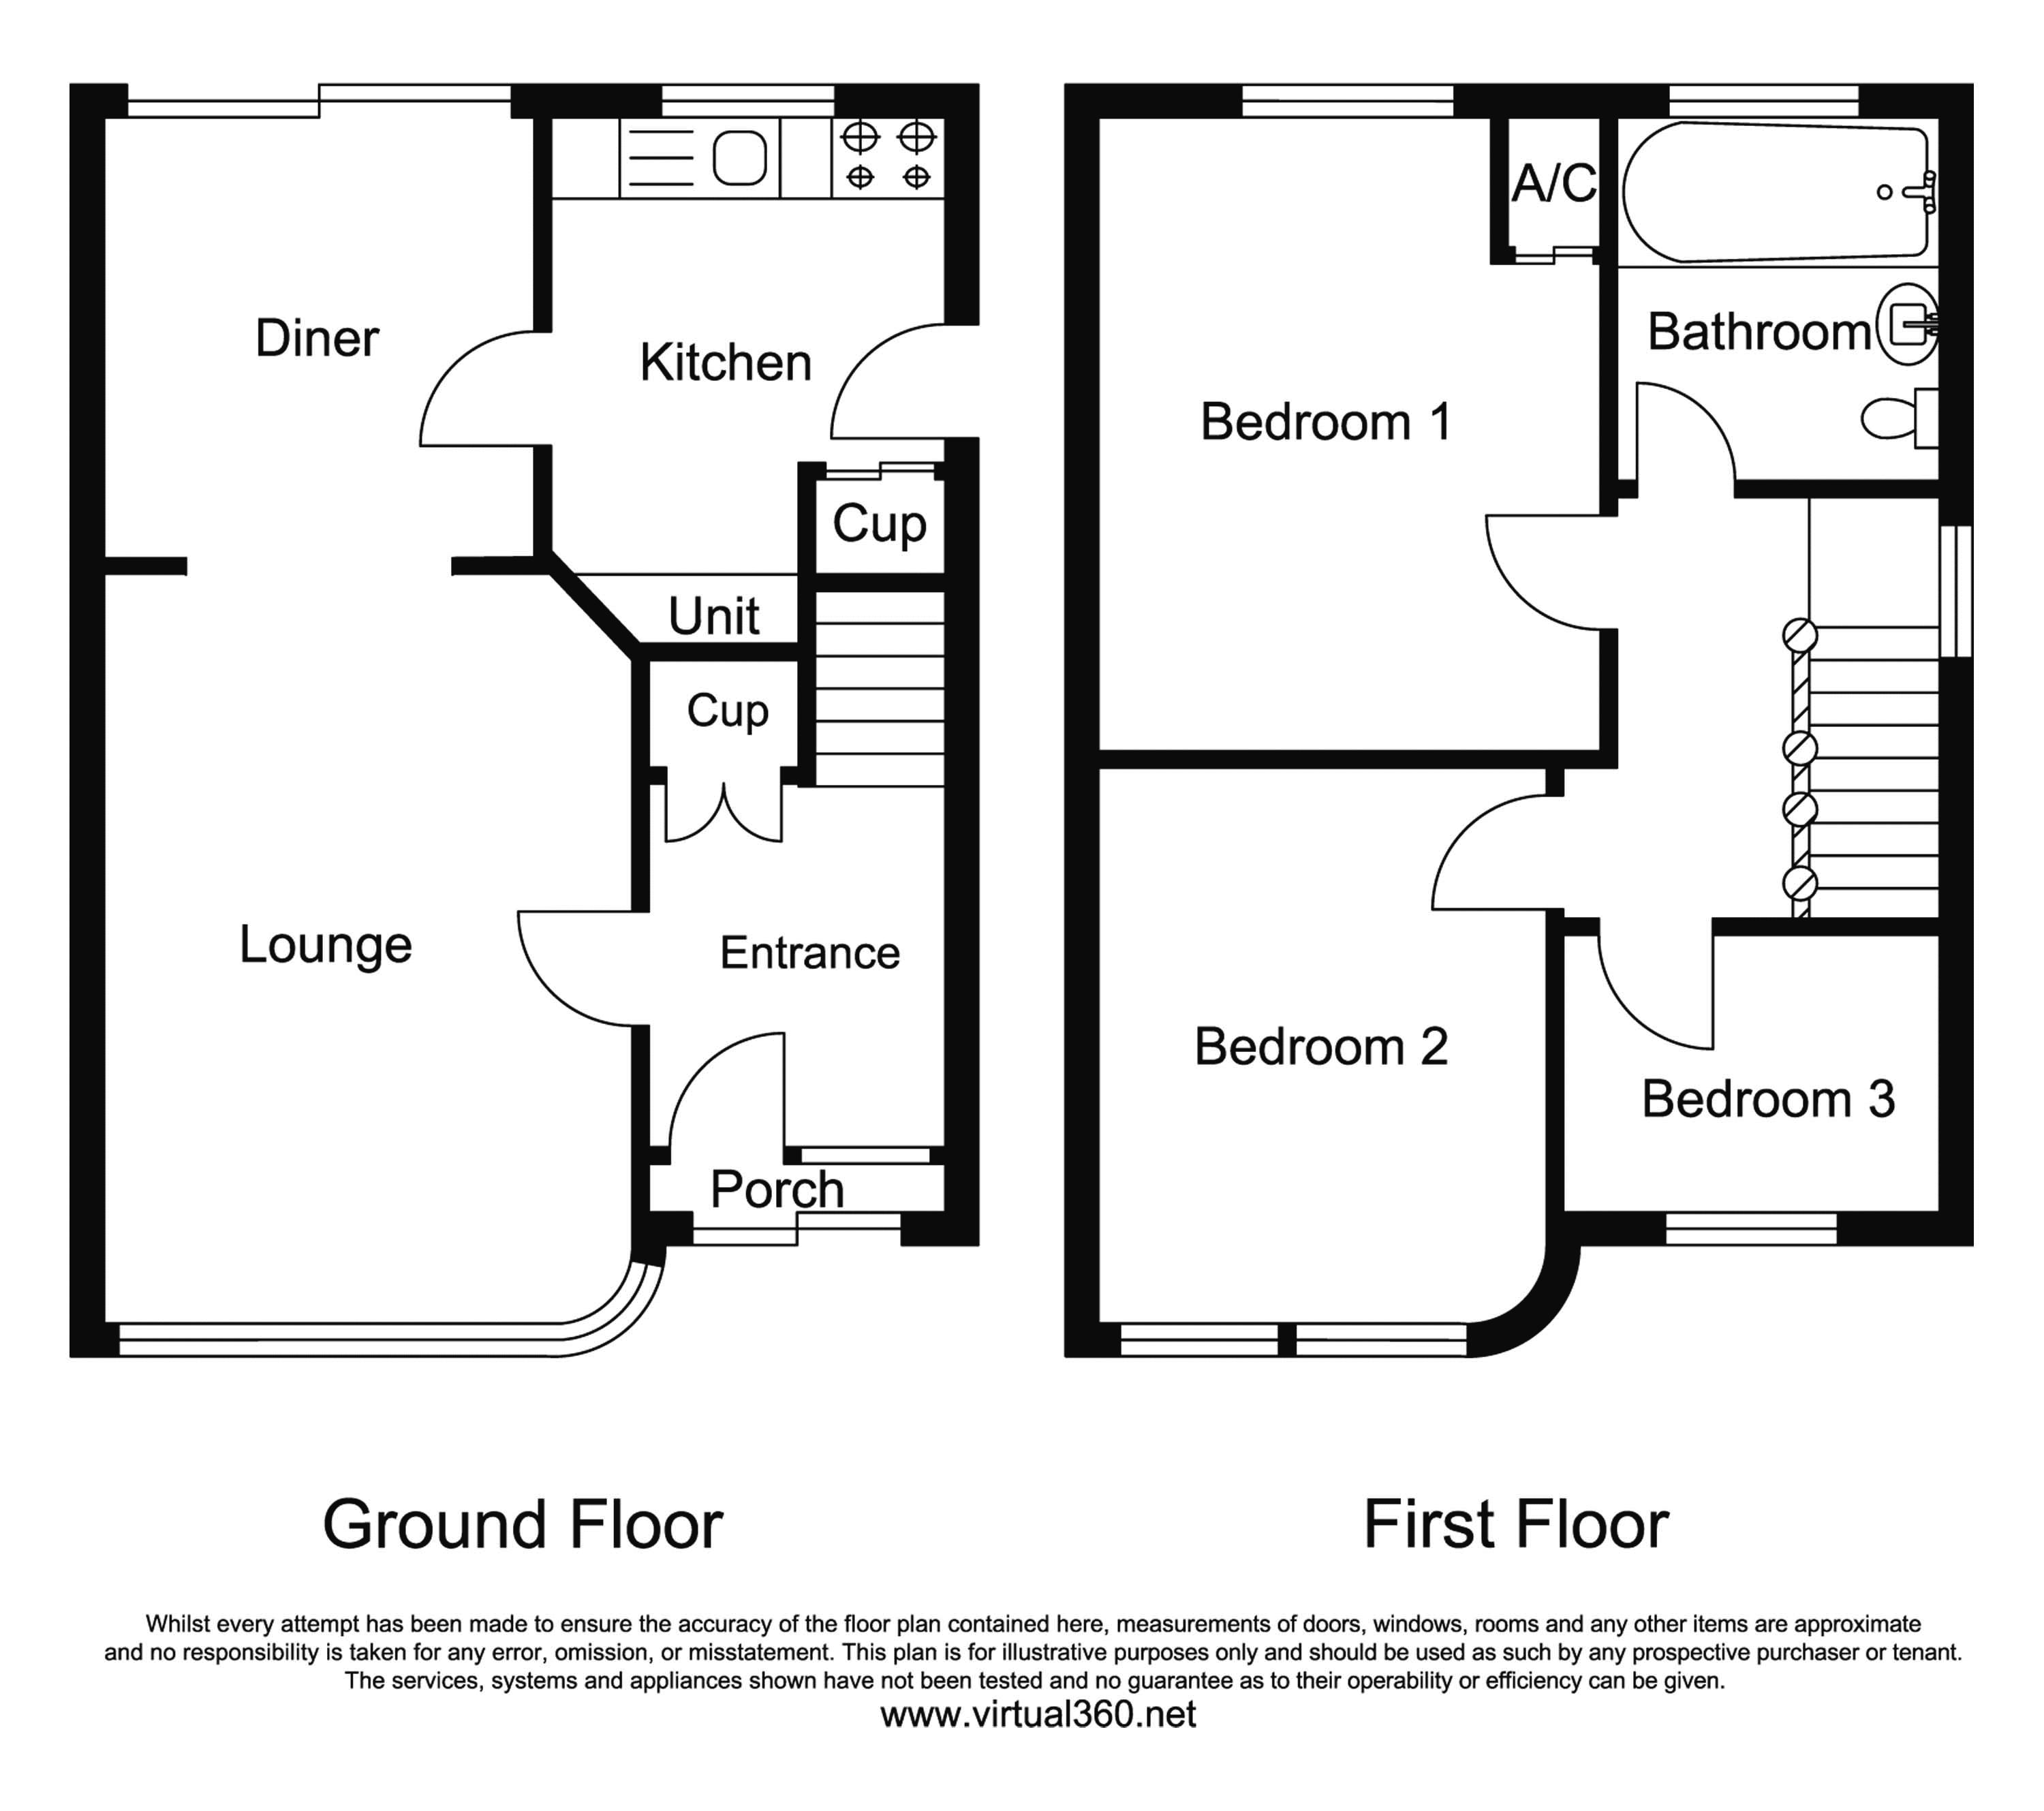 Glenfield Road, Leicester floor plan